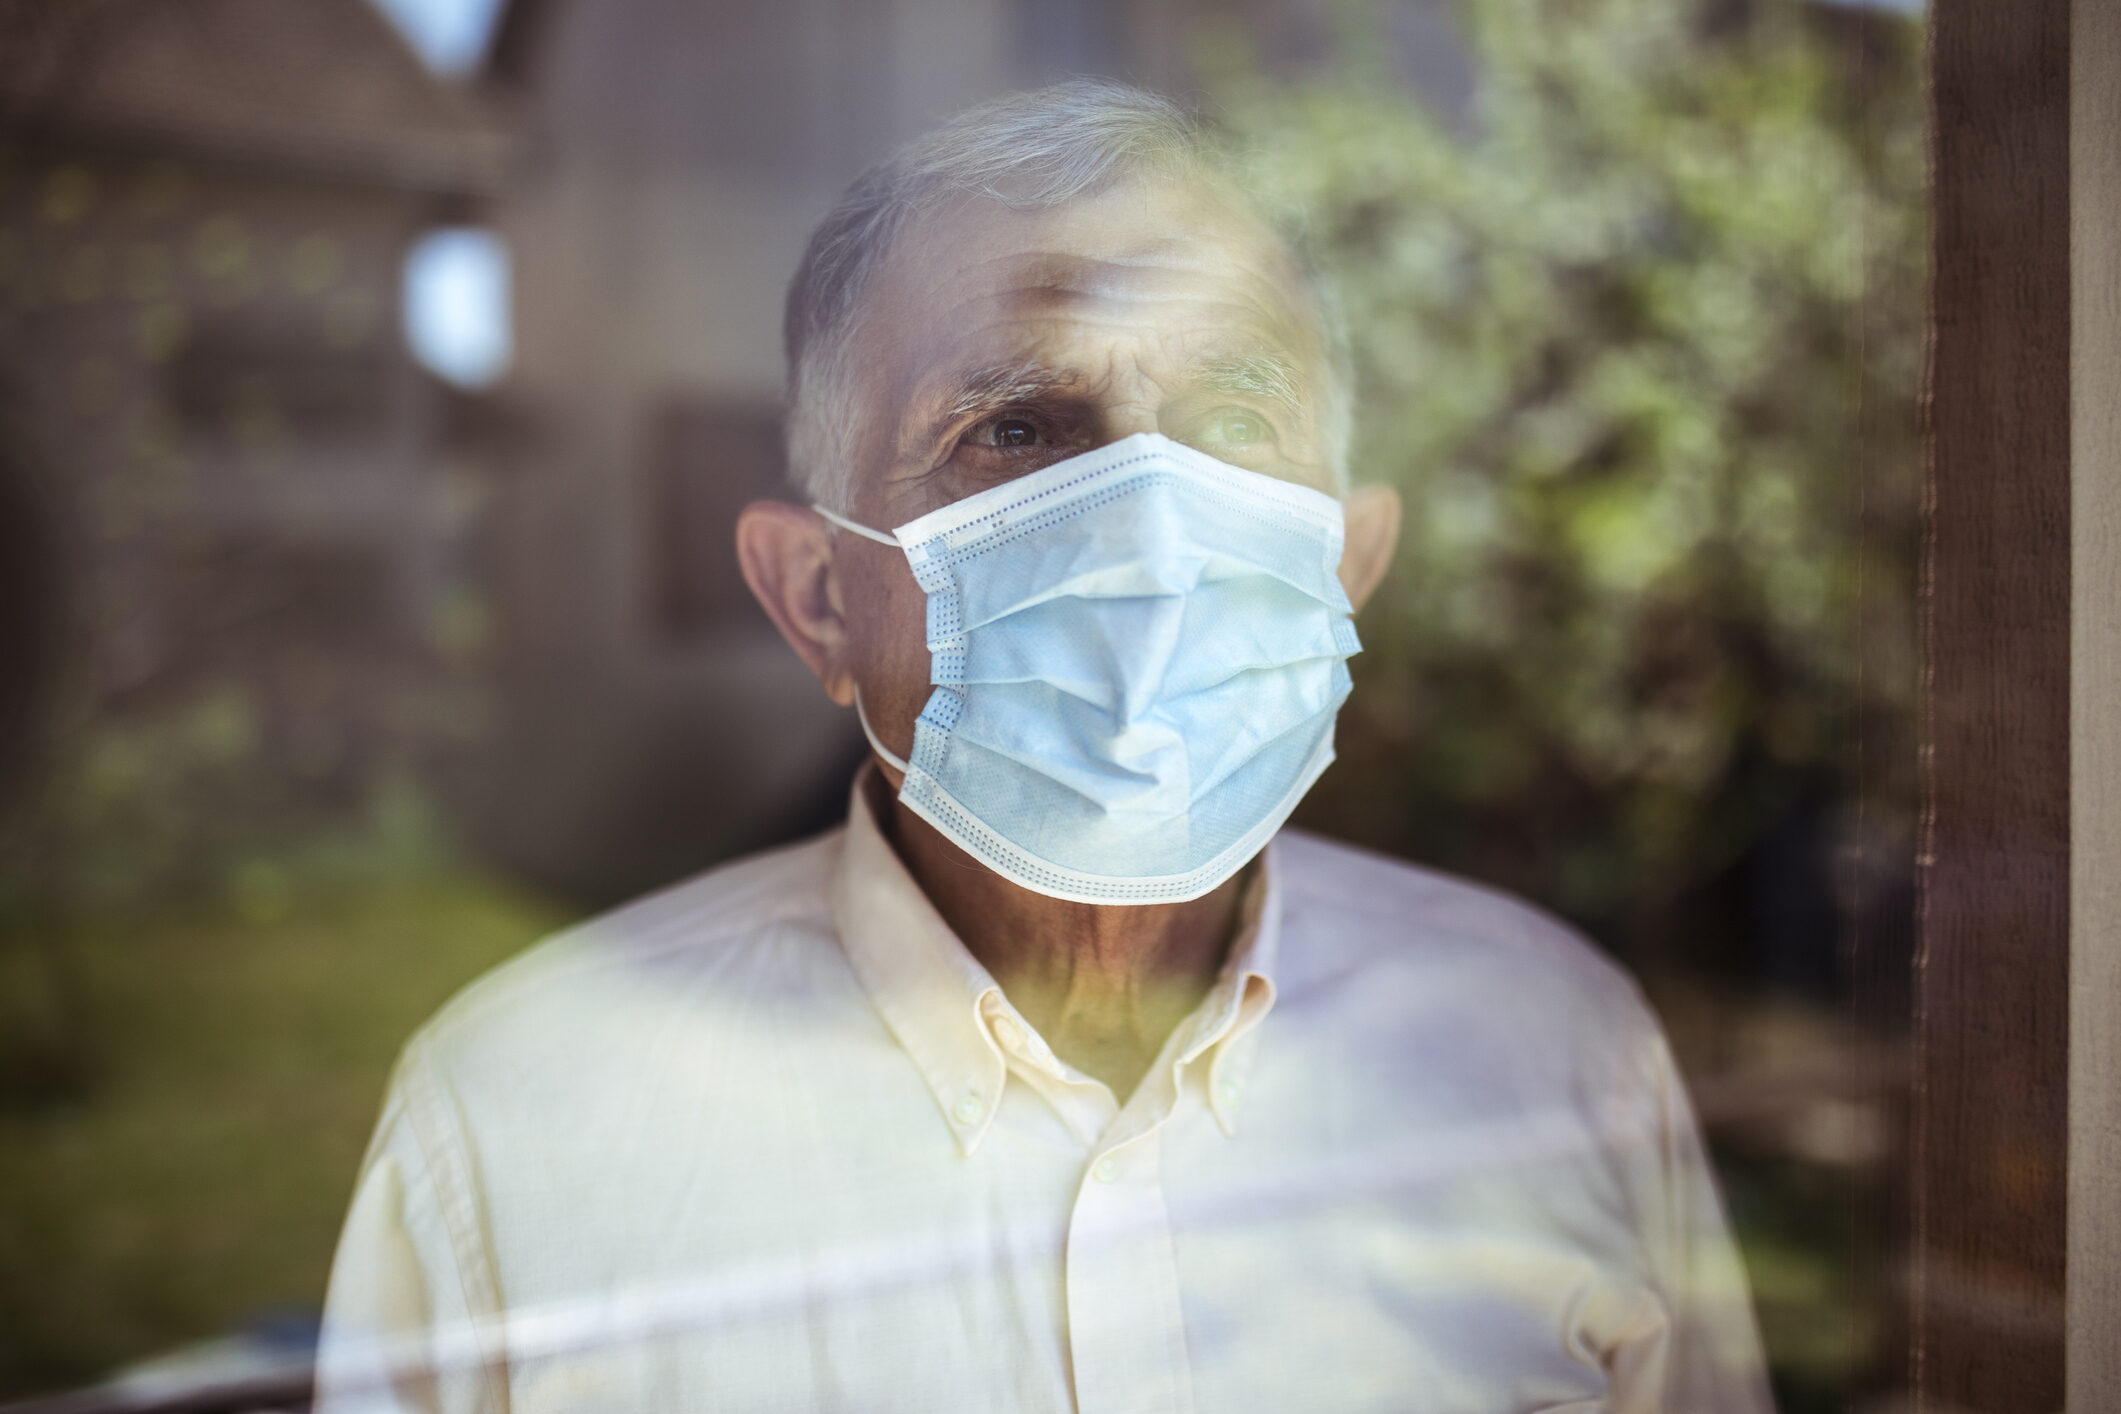 Quarantine for old people